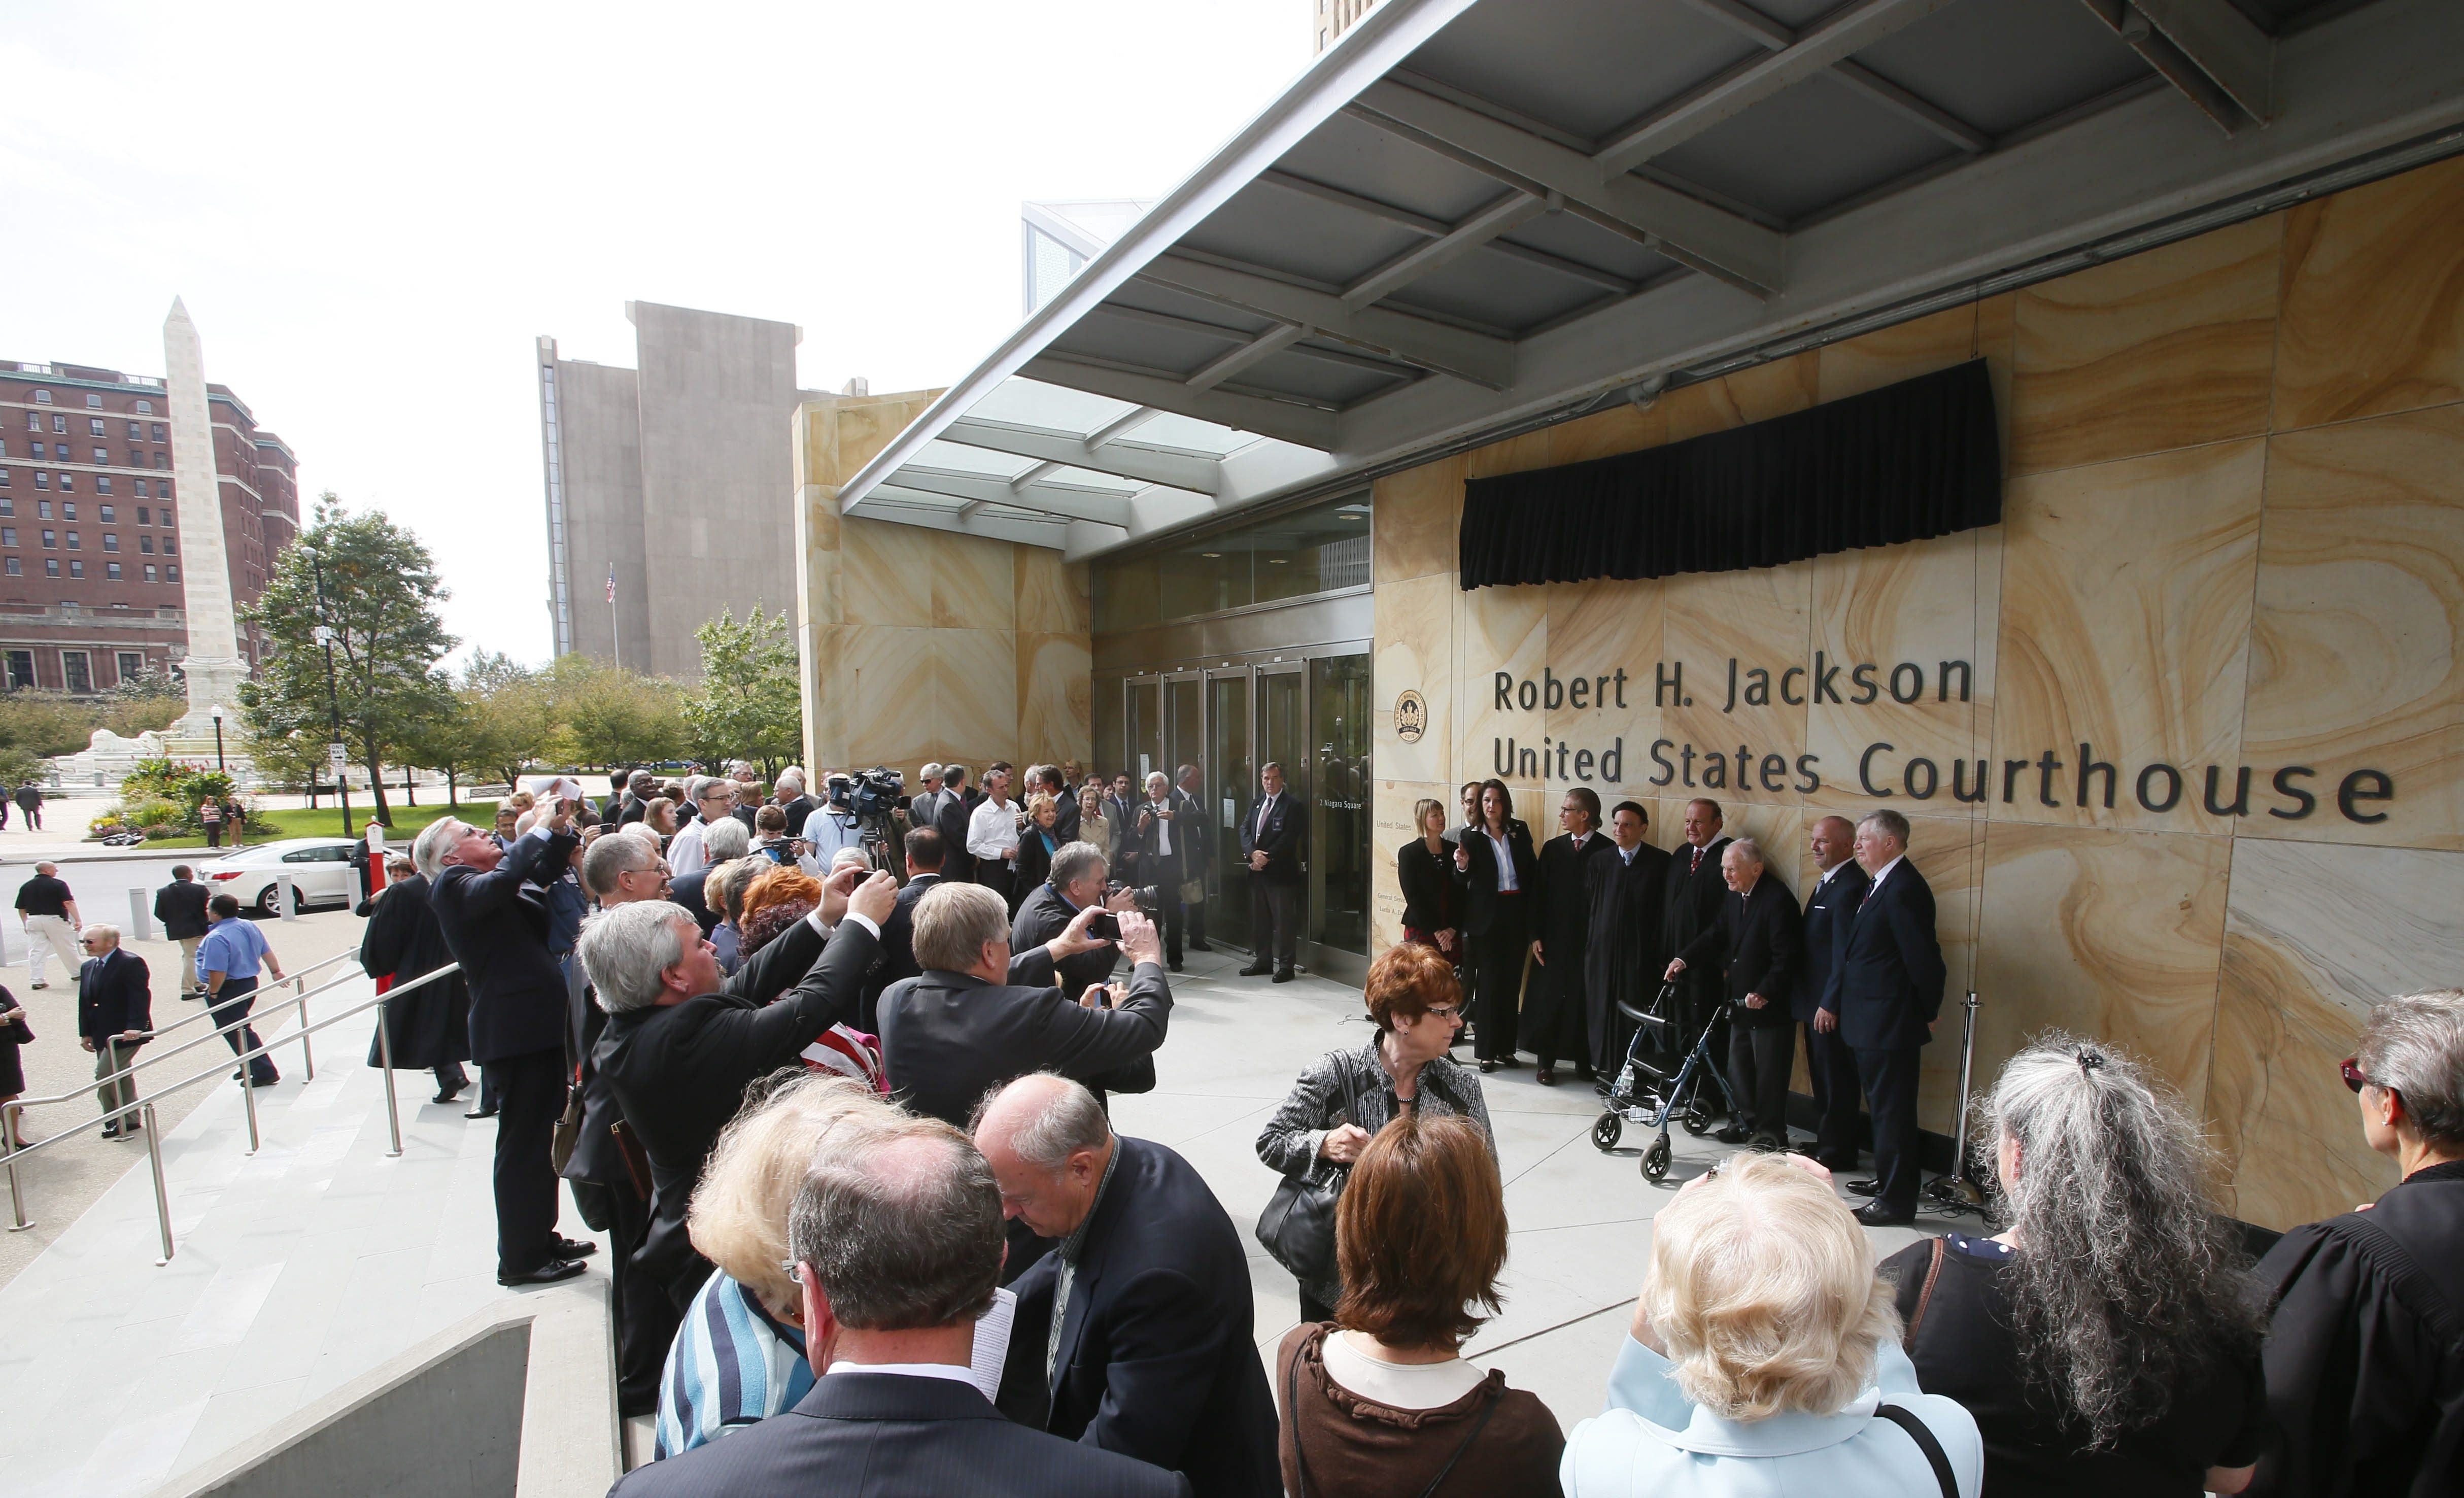 Judges and dignitaries pose for photographs during a ceremony to officially name the Robert H. Jackson United States Courthouse in Niagara Square.